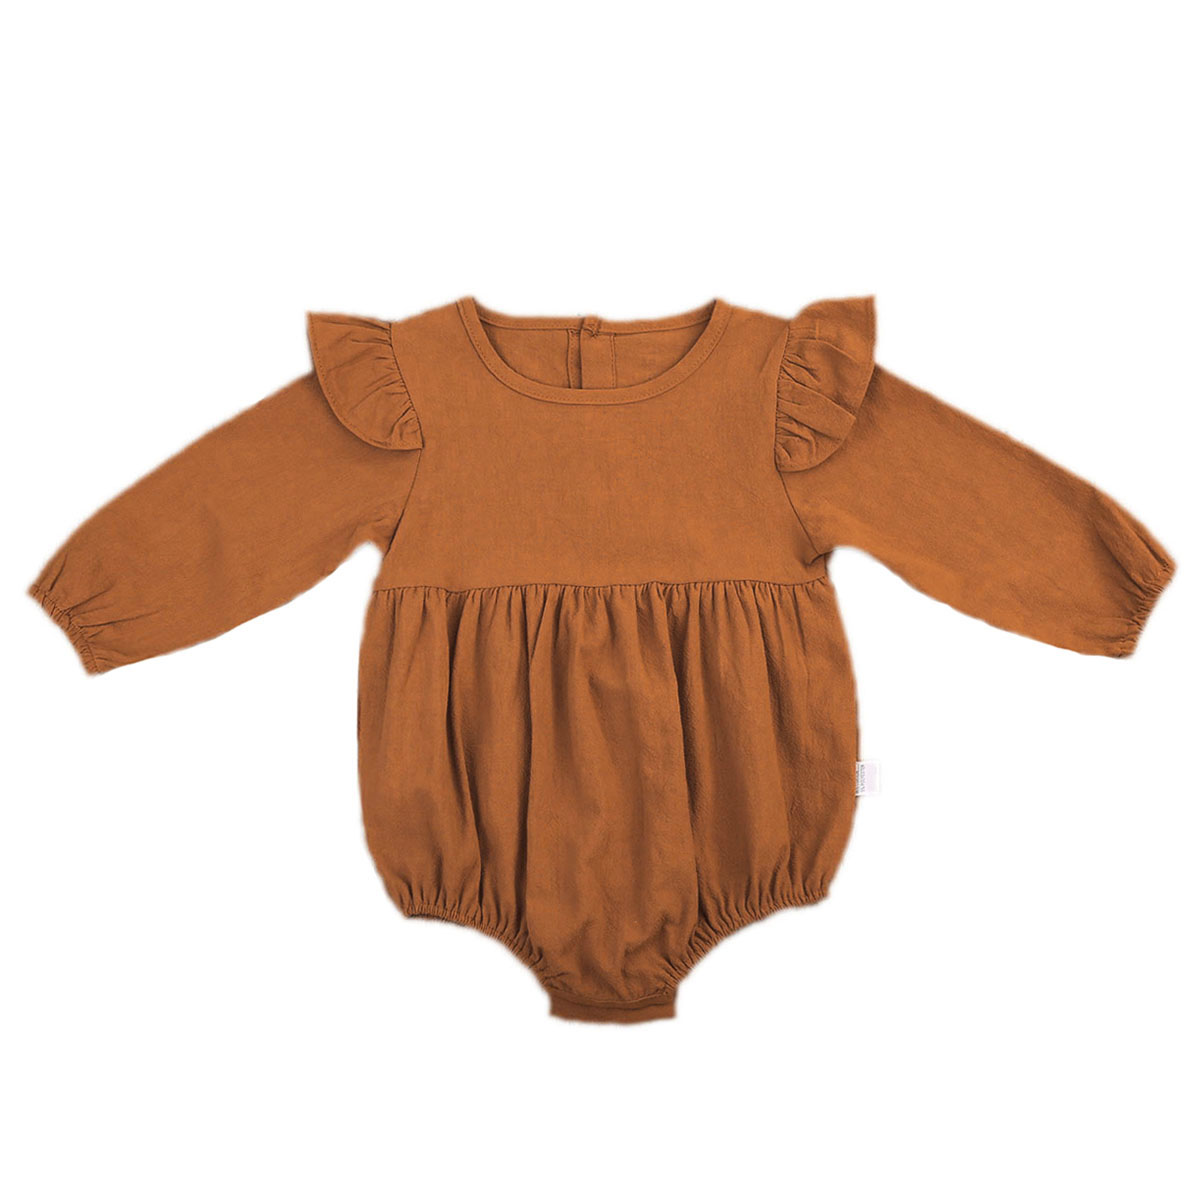 Cute Infant Baby Girls Clothing Autumn Long Sleeve Cotton Romper Toddler Kids Playsuit Outfits warm thicken baby rompers long sleeve organic cotton autumn